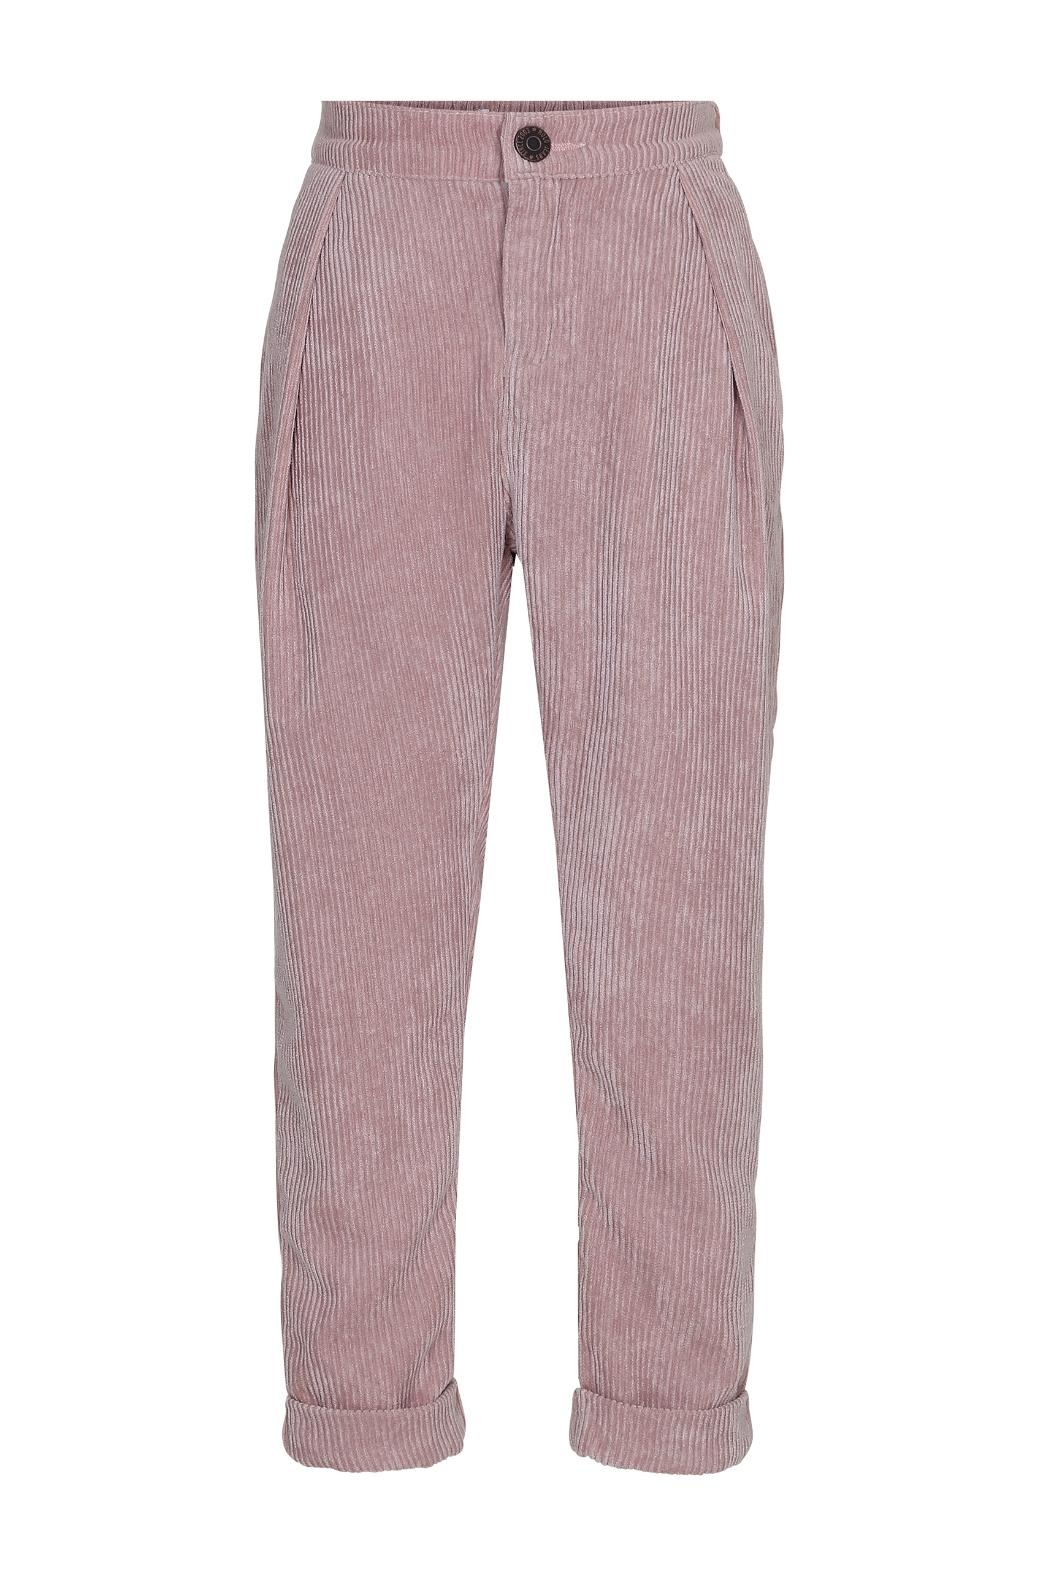 Molo Amelia Trousers - Front Cropped Image